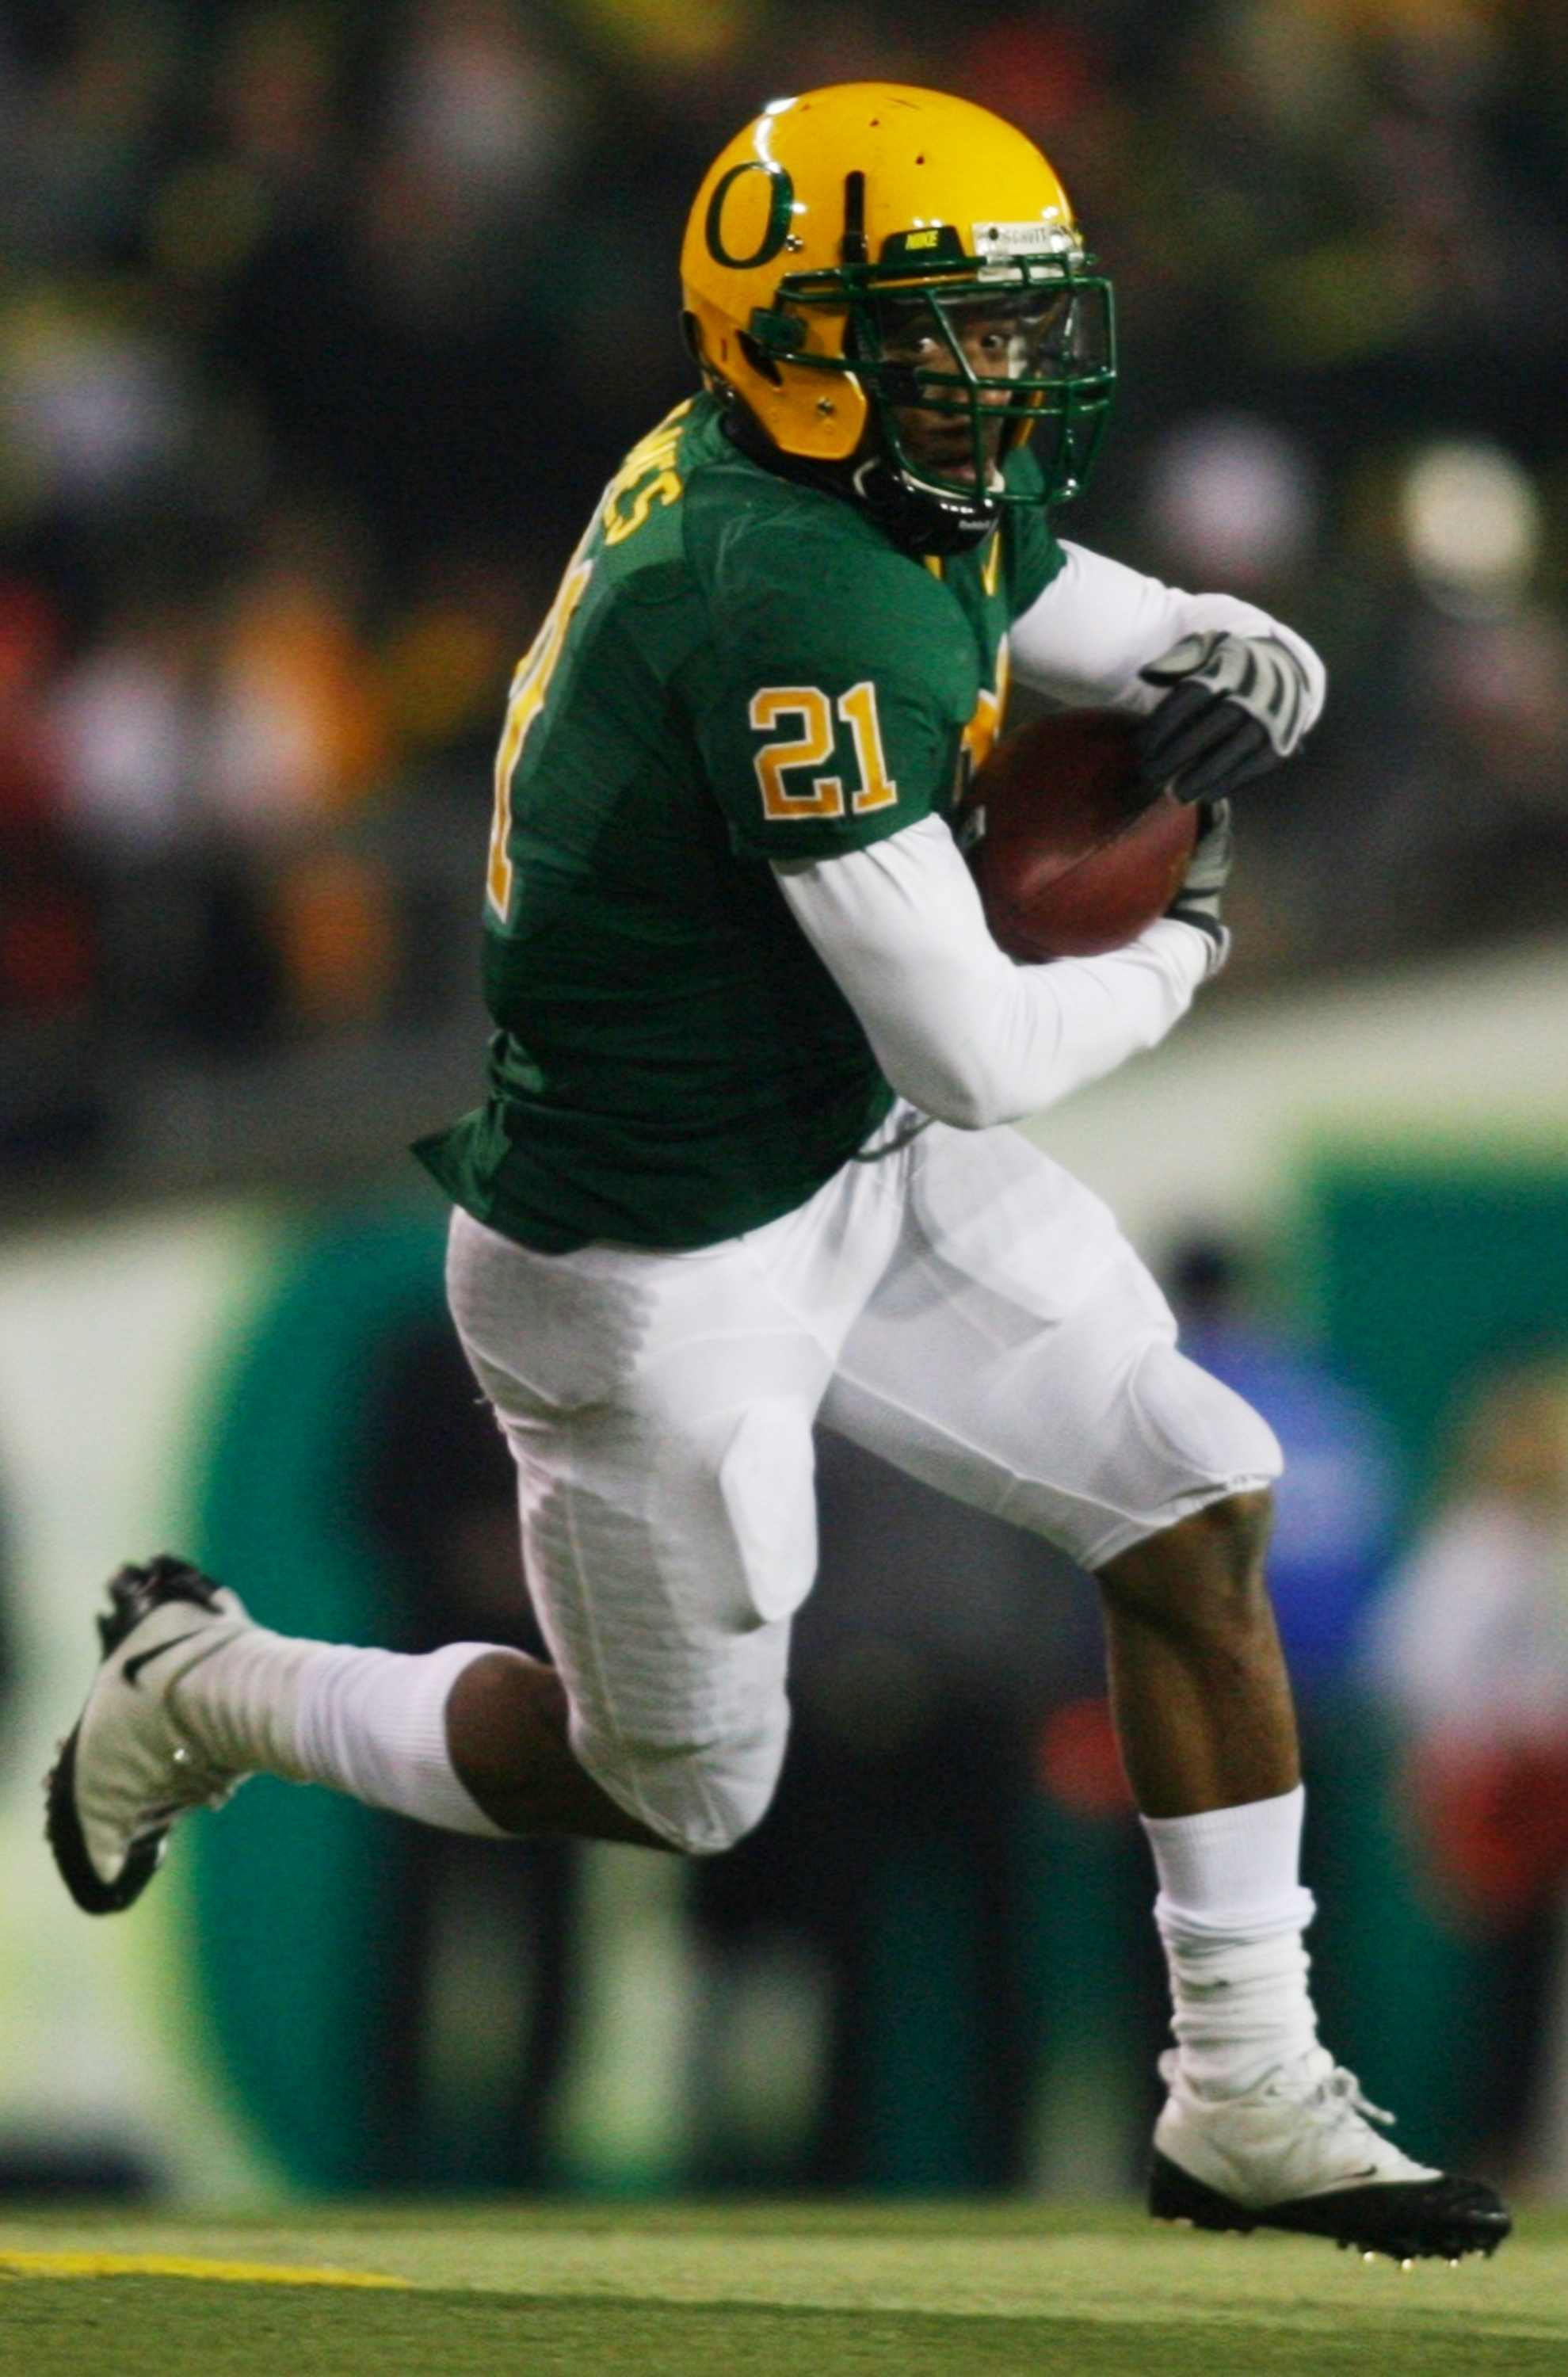 EUGENE,OR - DECEMBER 03:  LaMichael James #21 of the Oregon Ducks runs with the ball against the Oregon State Beavers at Autzen Stadium on December 3, 2009 in Eugene, Oregon. (Photo by Tom Hauck/Getty Images)